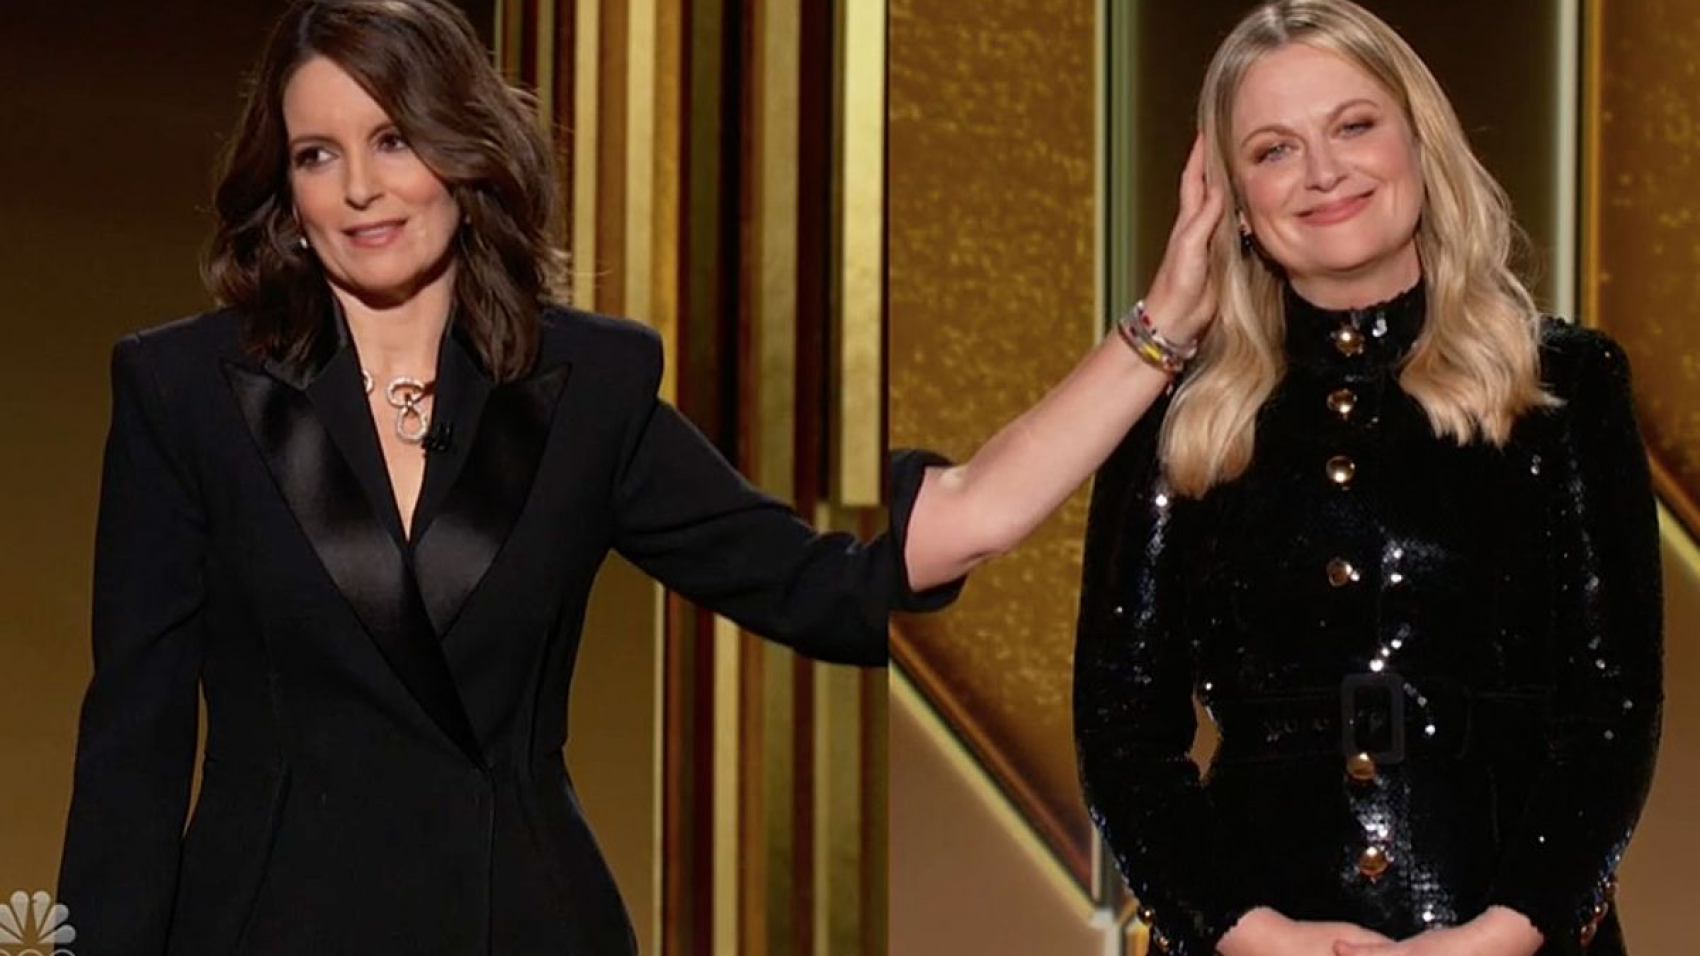 Tina Fey and Amy Poehler at the 78th Golden Globes